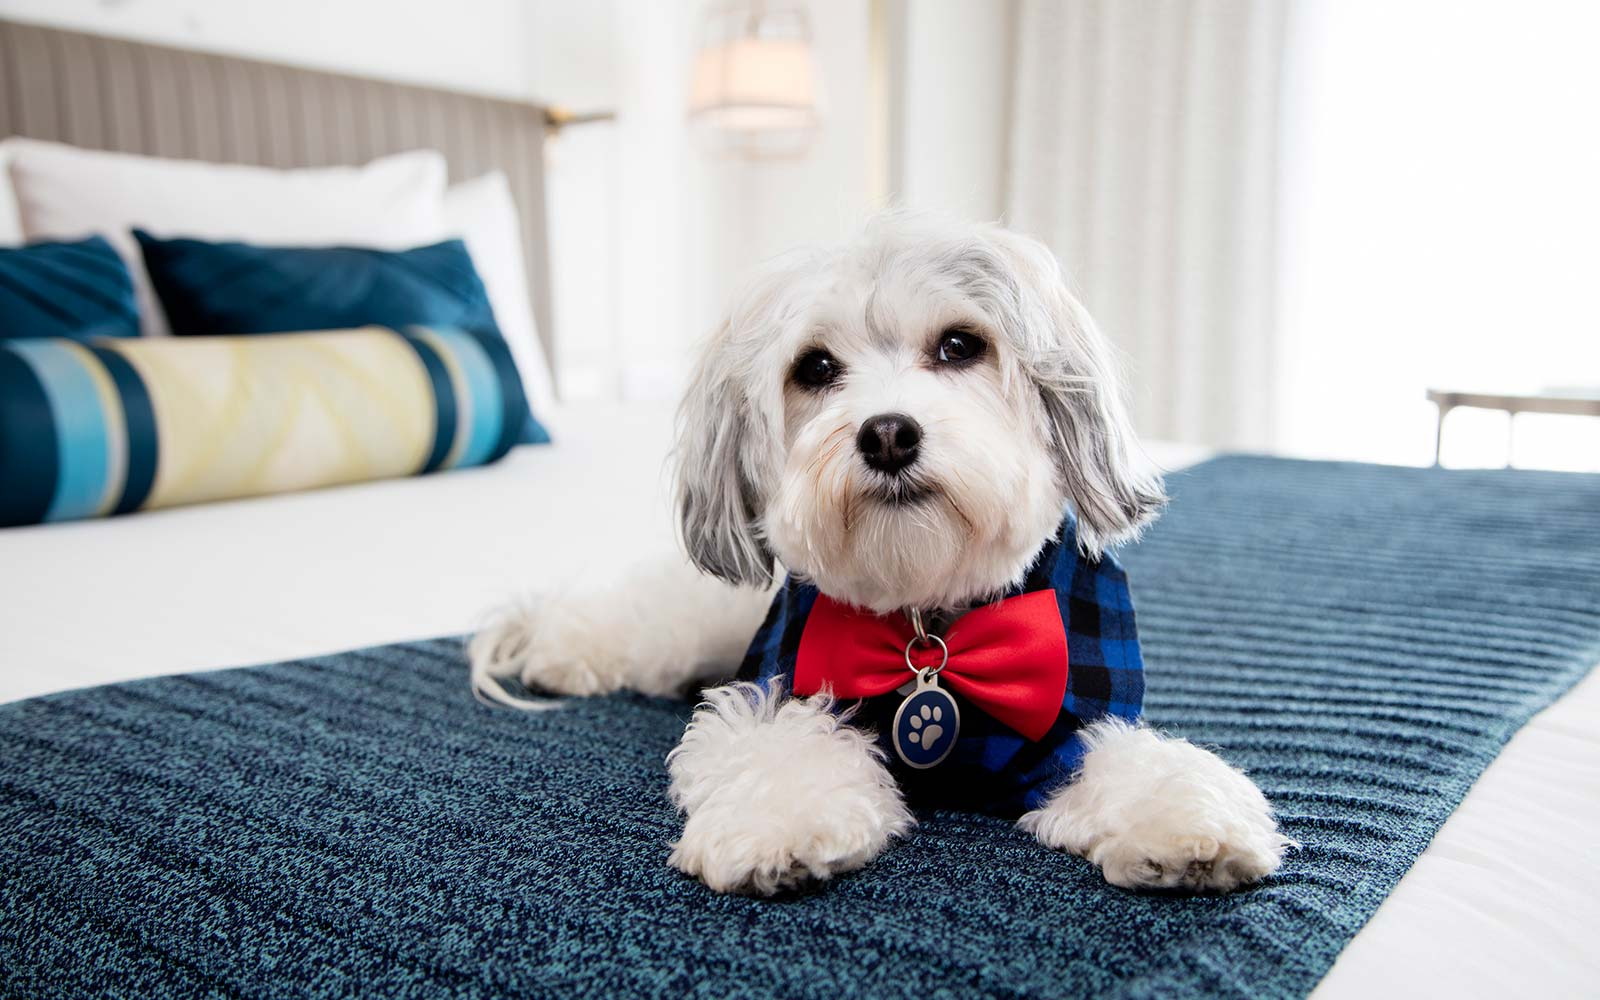 This Hotel Offers Puppy Cuddles on Demand